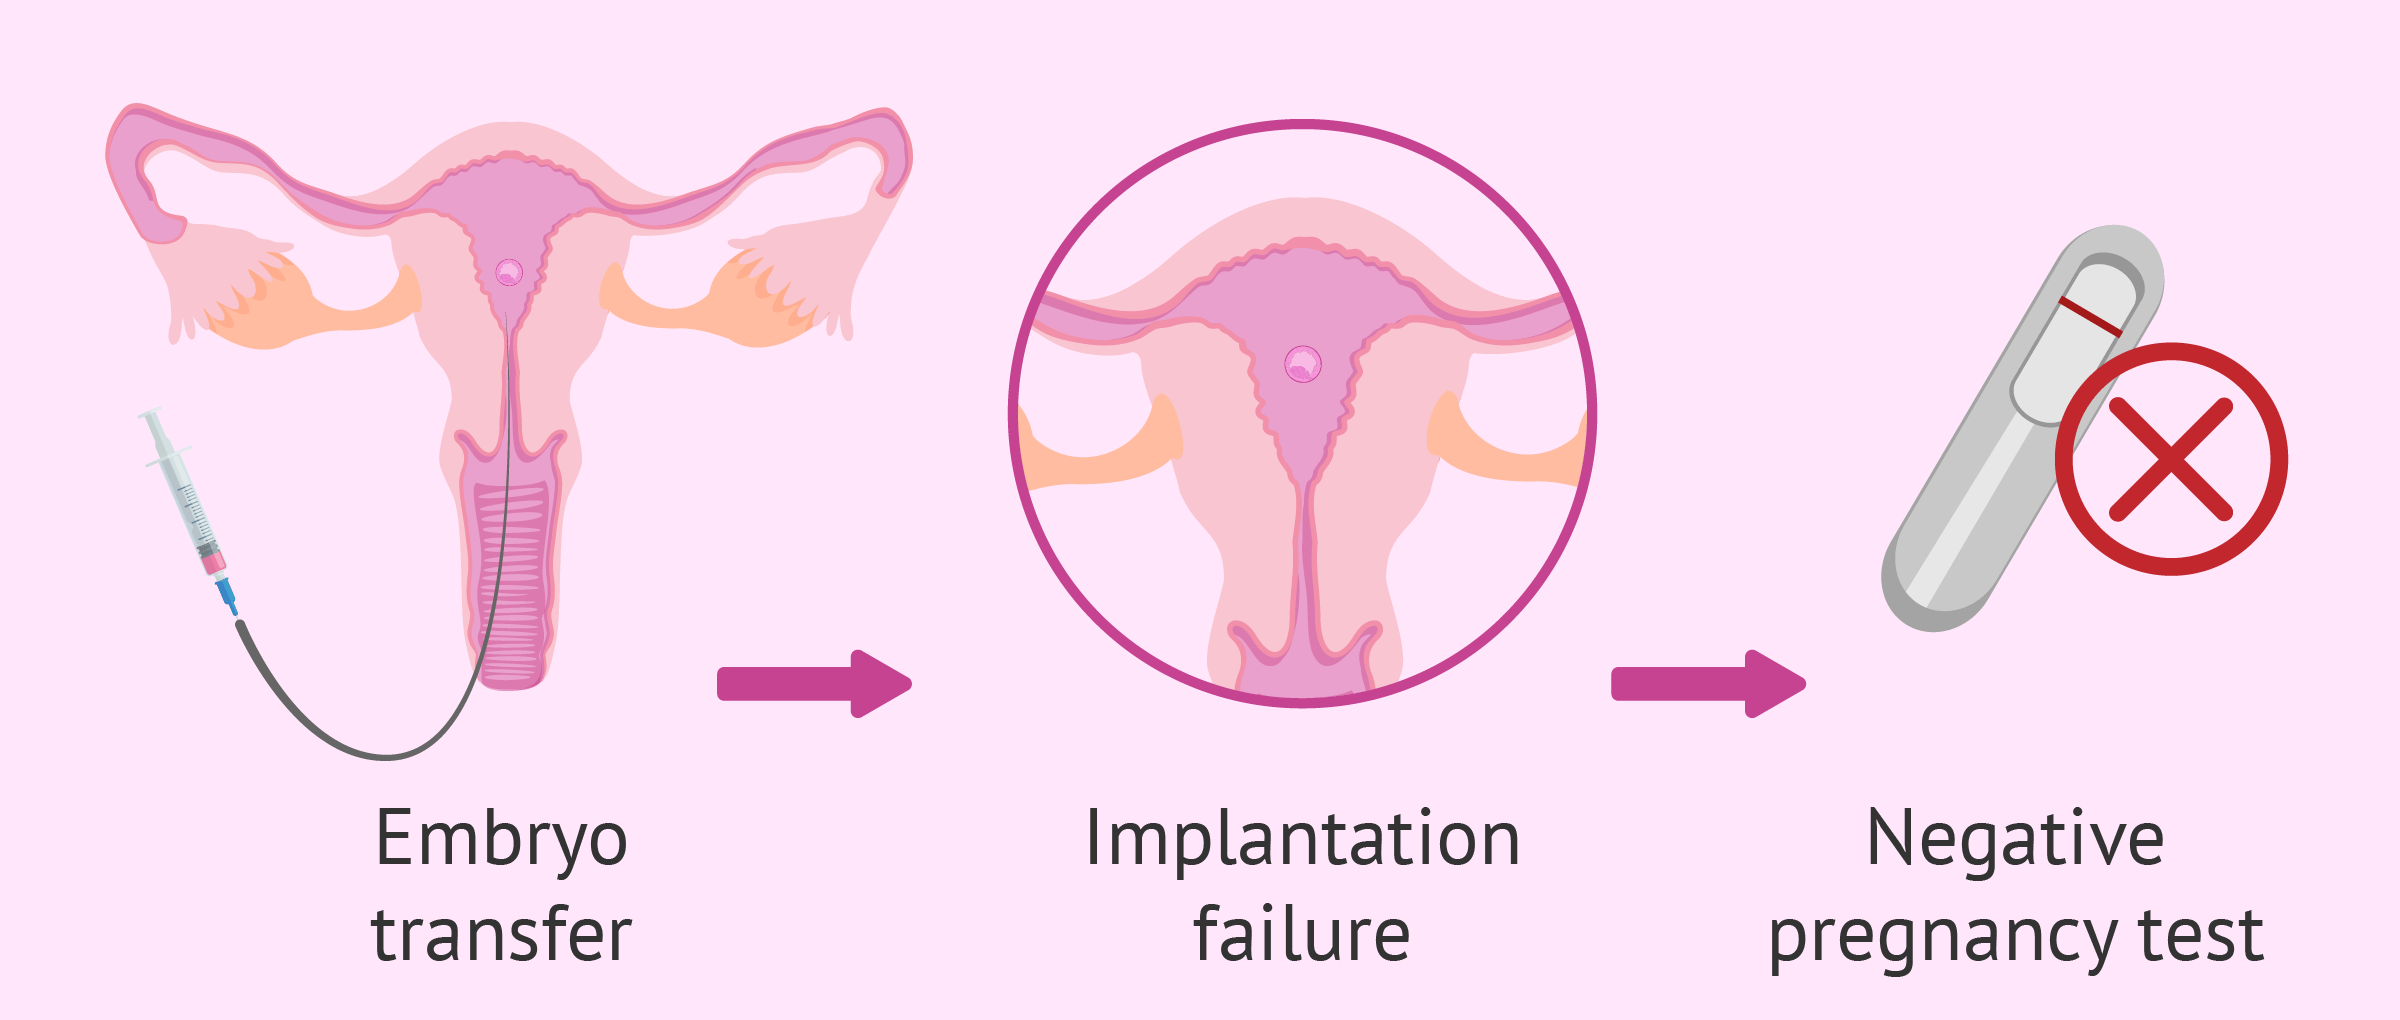 Repeated implantation failures after IVF